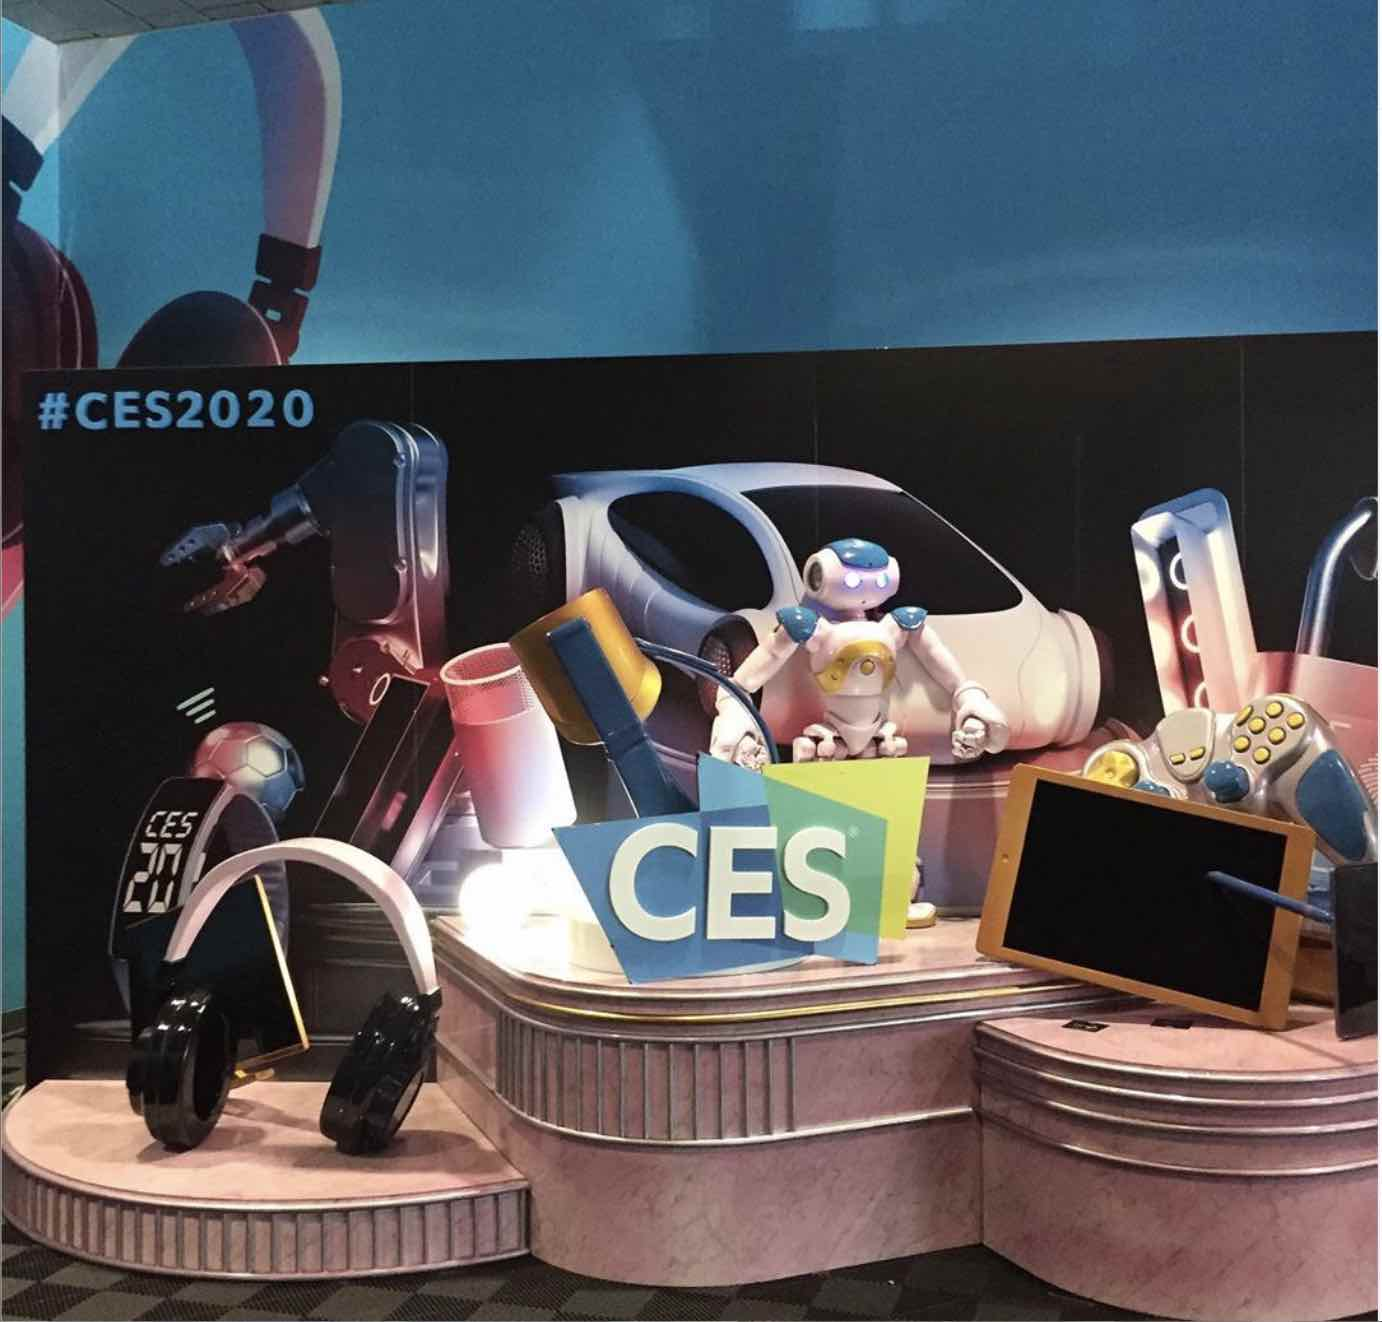 CES2020 on Pinterest - Photo via IG by @ces.